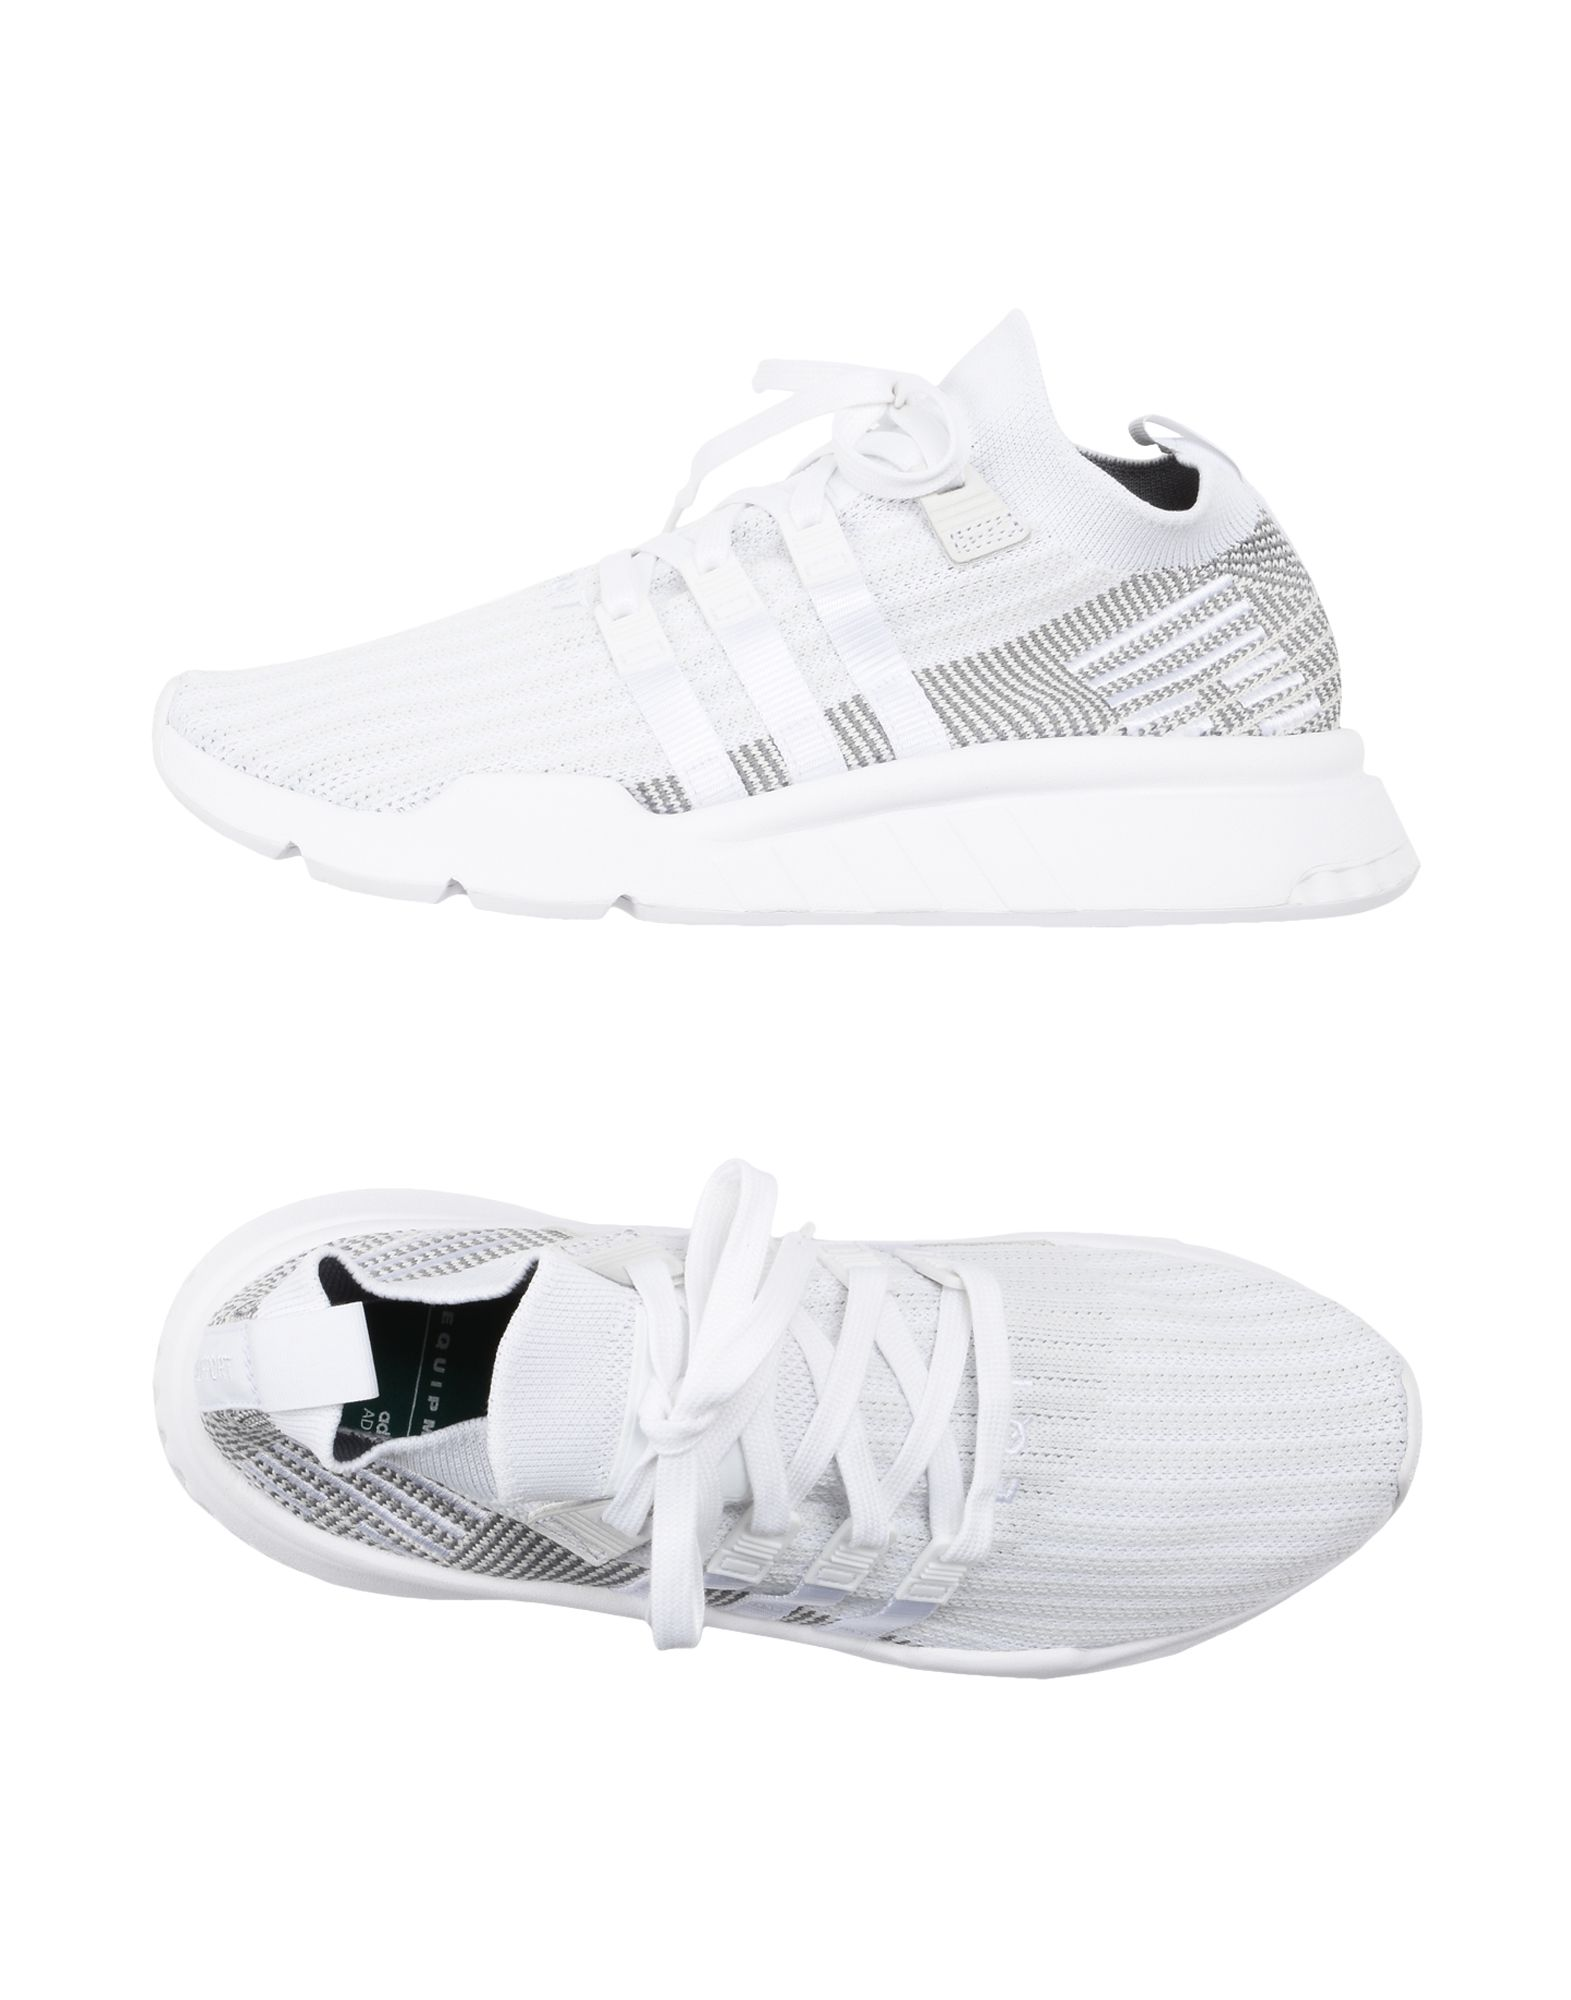 Adidas Originals Eqt Support Sneakers Mid Adv Pk - Sneakers Support - Men Adidas Originals Sneakers online on  United Kingdom - 11540378NP 873d58